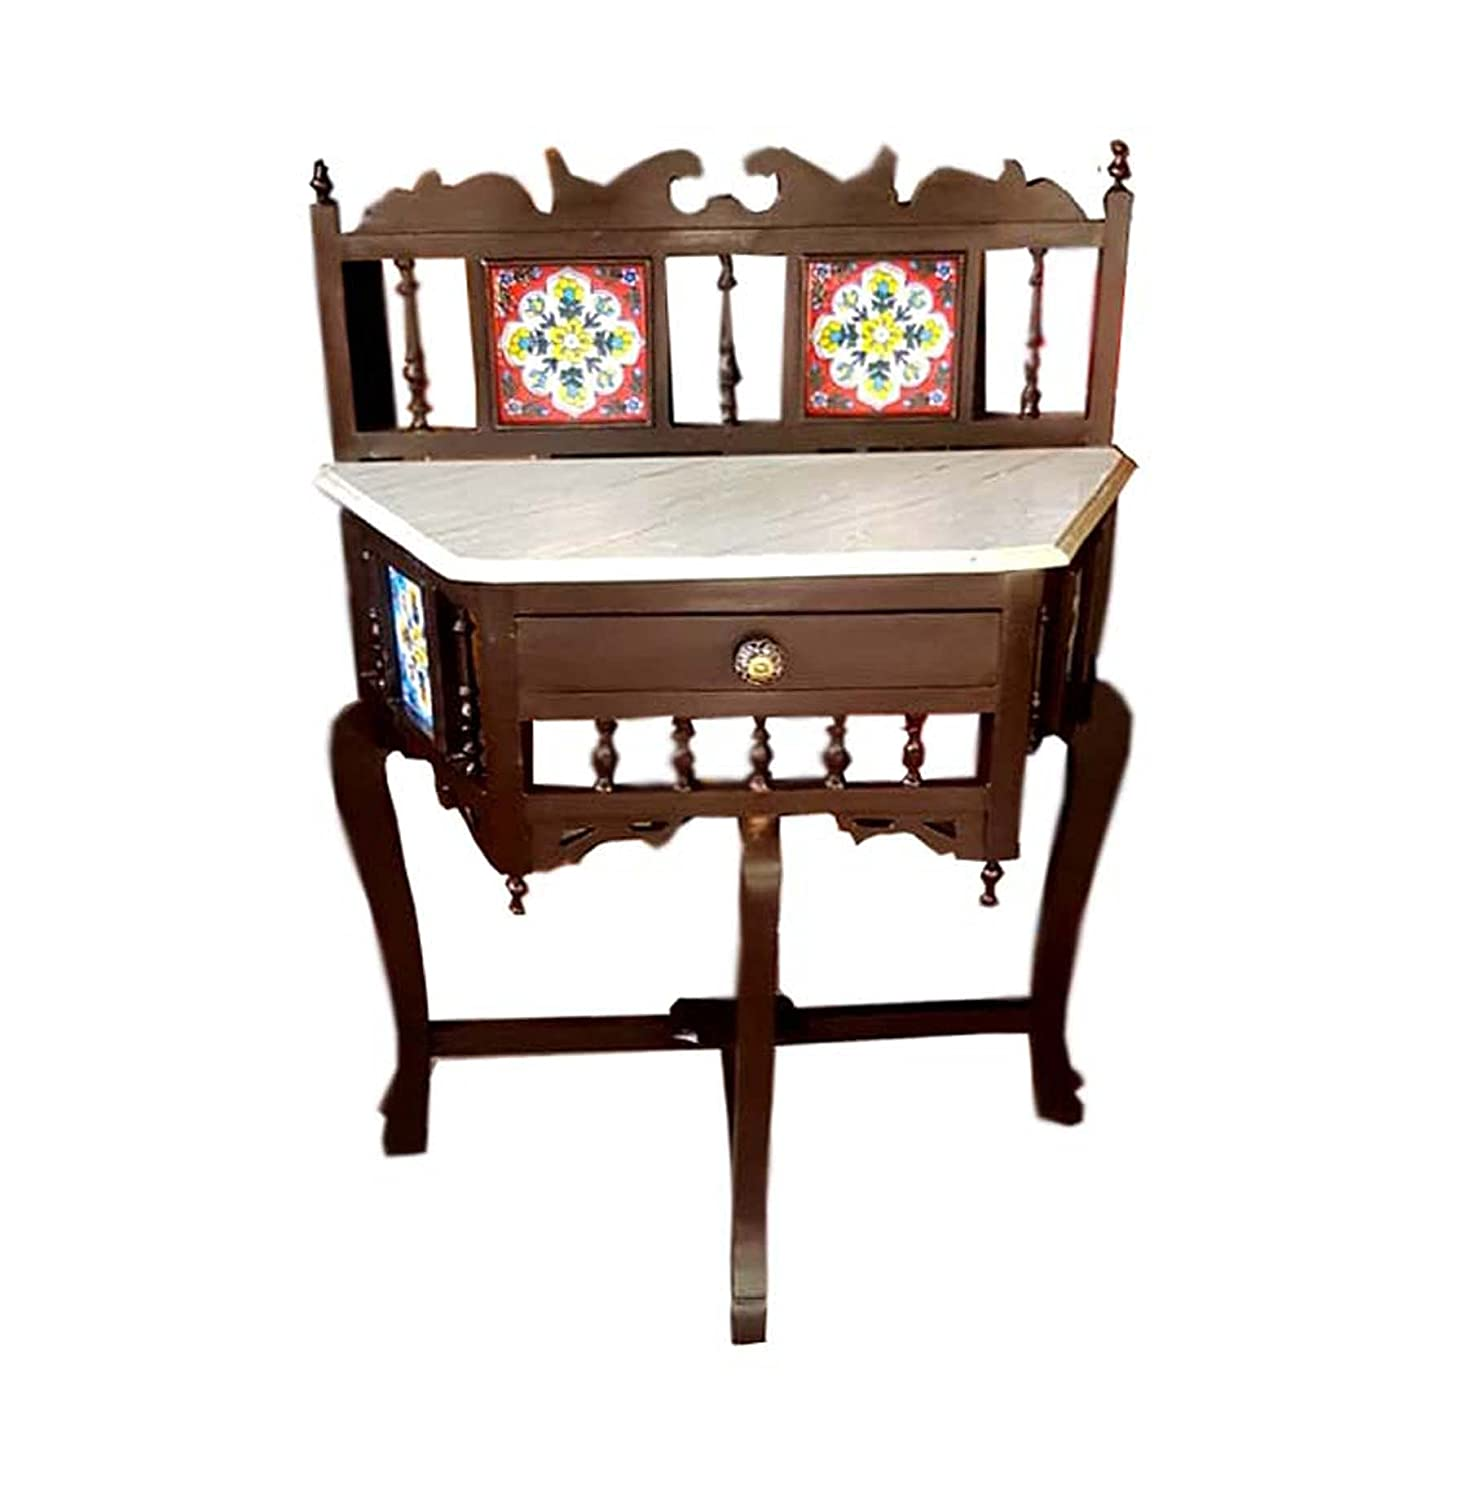 Exclusive Traditional Trapezium Shape 3 Leg Console Table Solid Teak Wood with Marble Top, Lacquer Finish Walnut Brown Size: 30x30x15 Inch